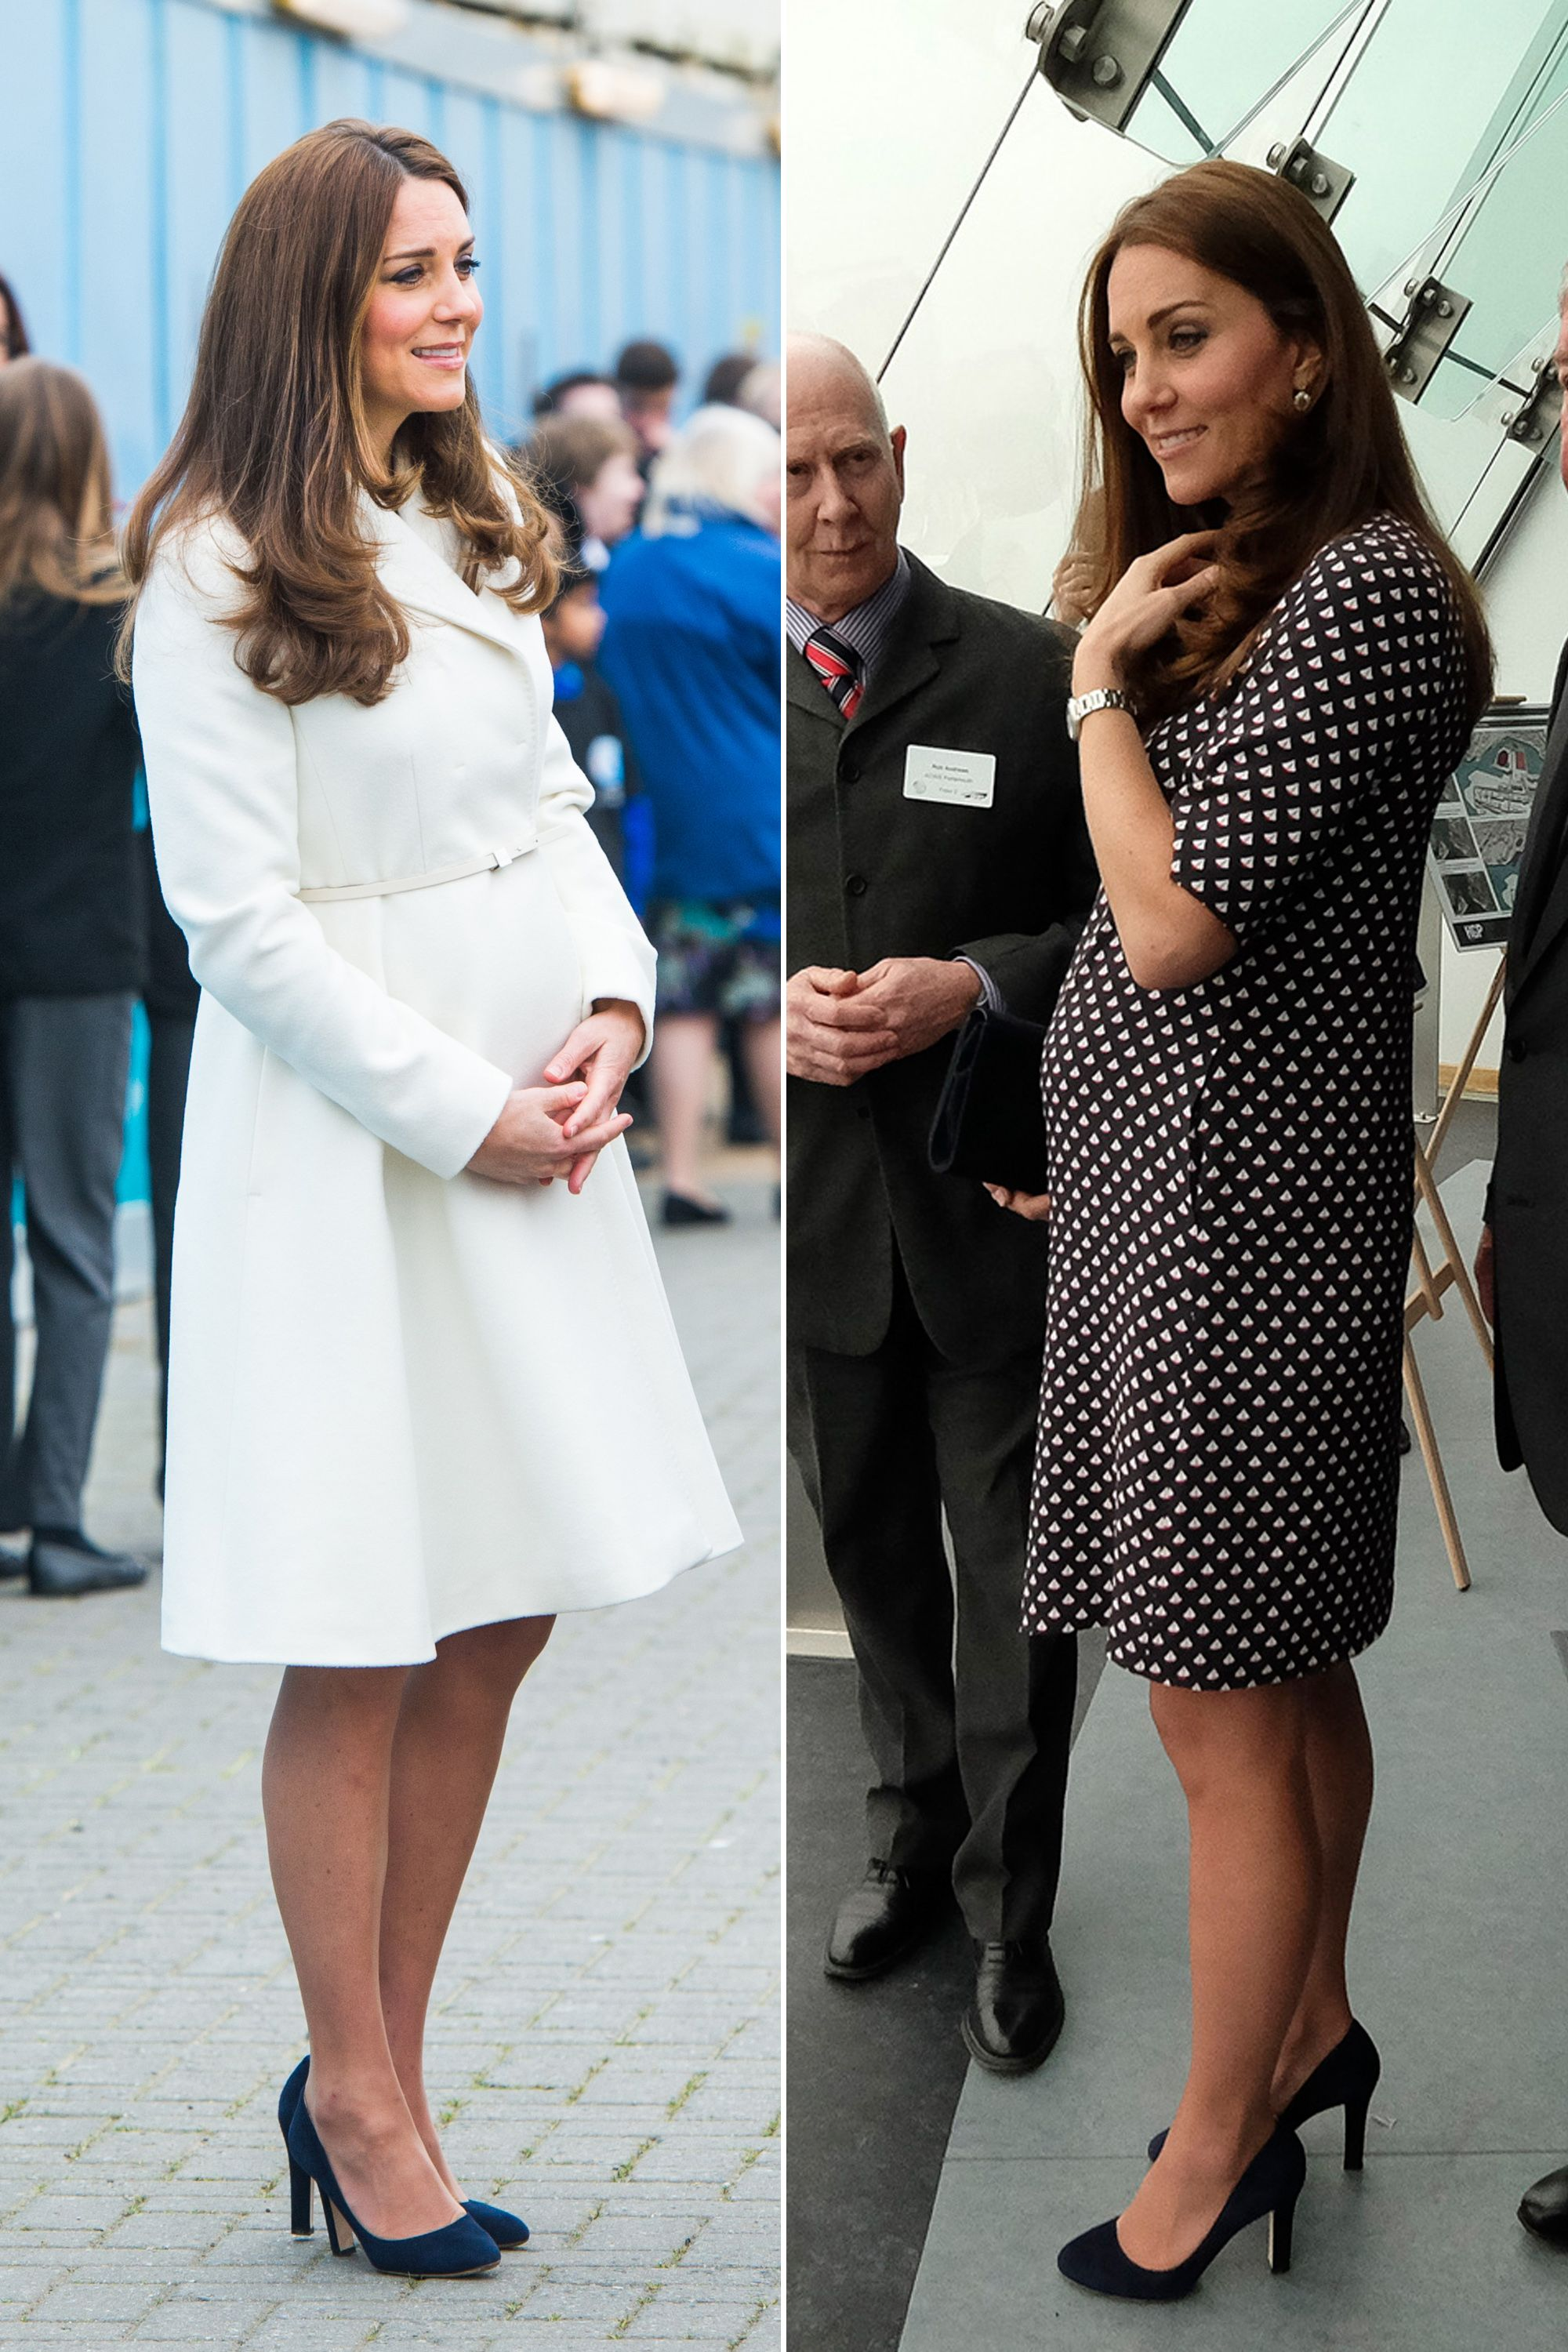 b8071d91e0cf0 50 Best Kate Middleton Pregnant Style Looks - Princess Kate Maternity  Fashion